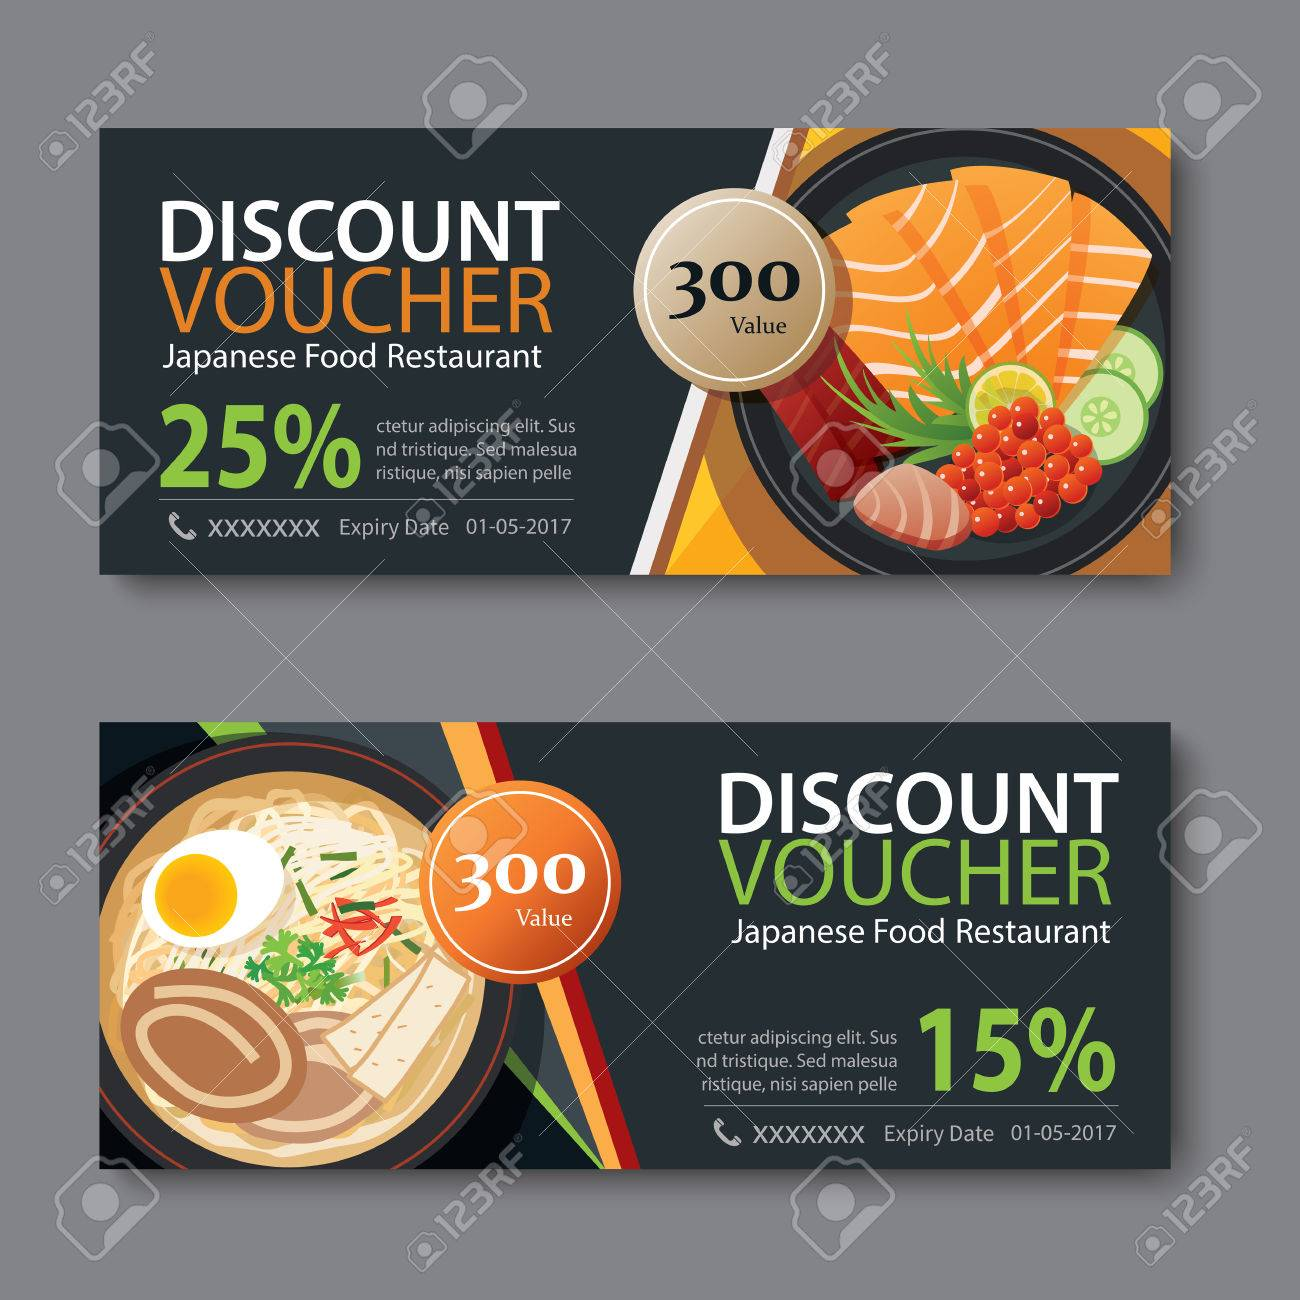 Discount Voucher Template With Japanese Food Flat Design Stock Vector    58388068  Lunch Voucher Template